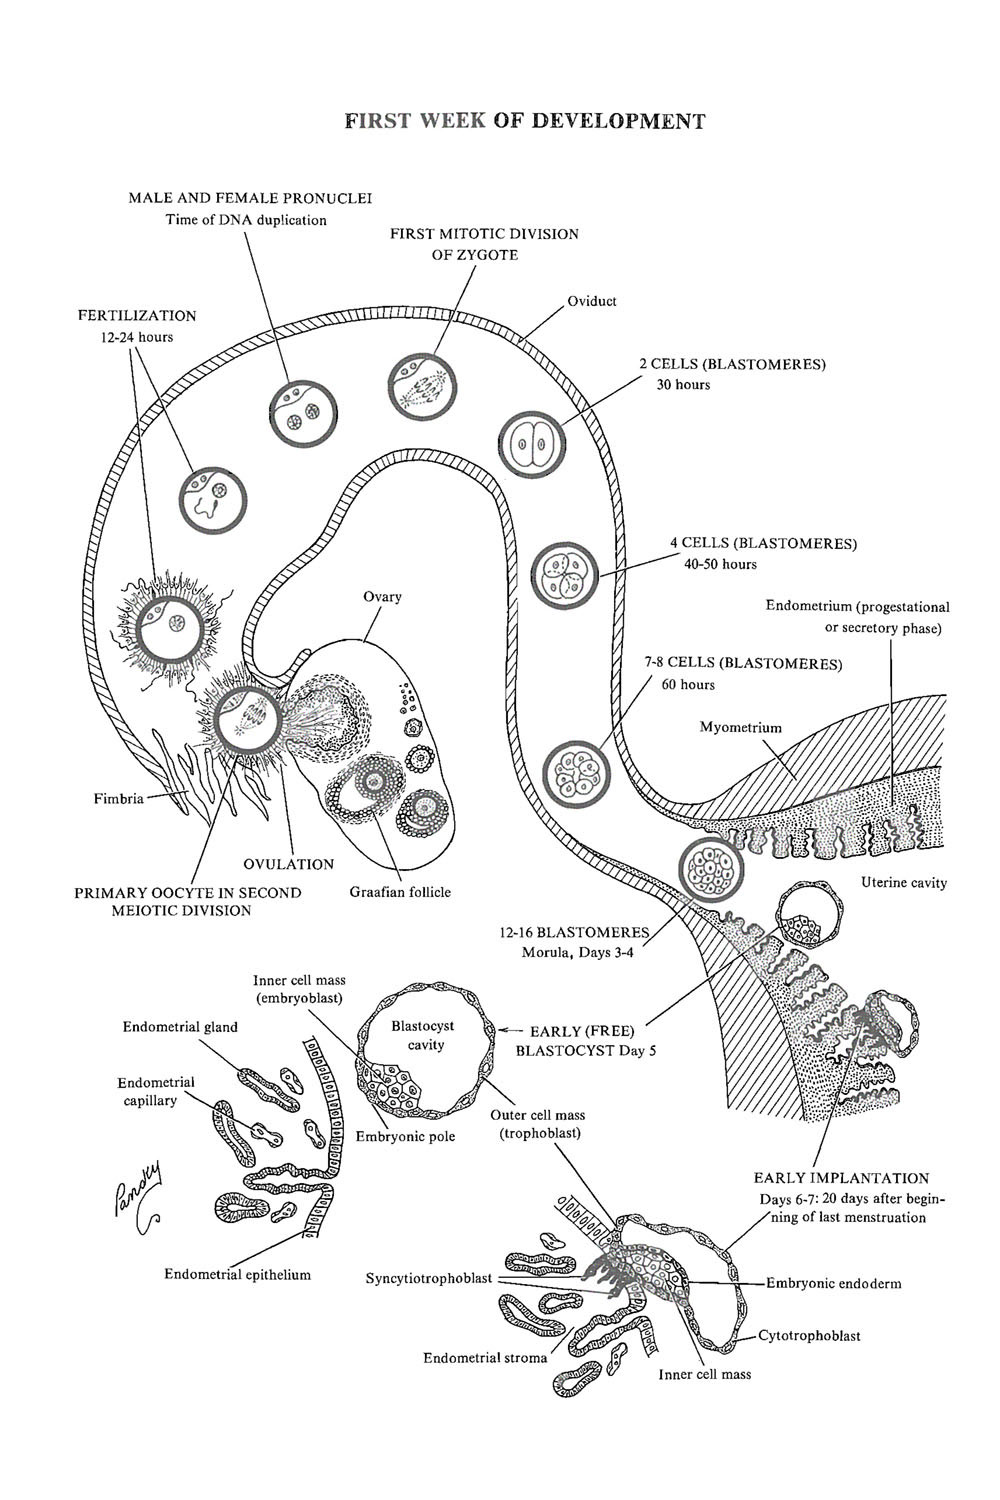 Chapter 14 Week 1 Of Embryonic Development Ovulation To